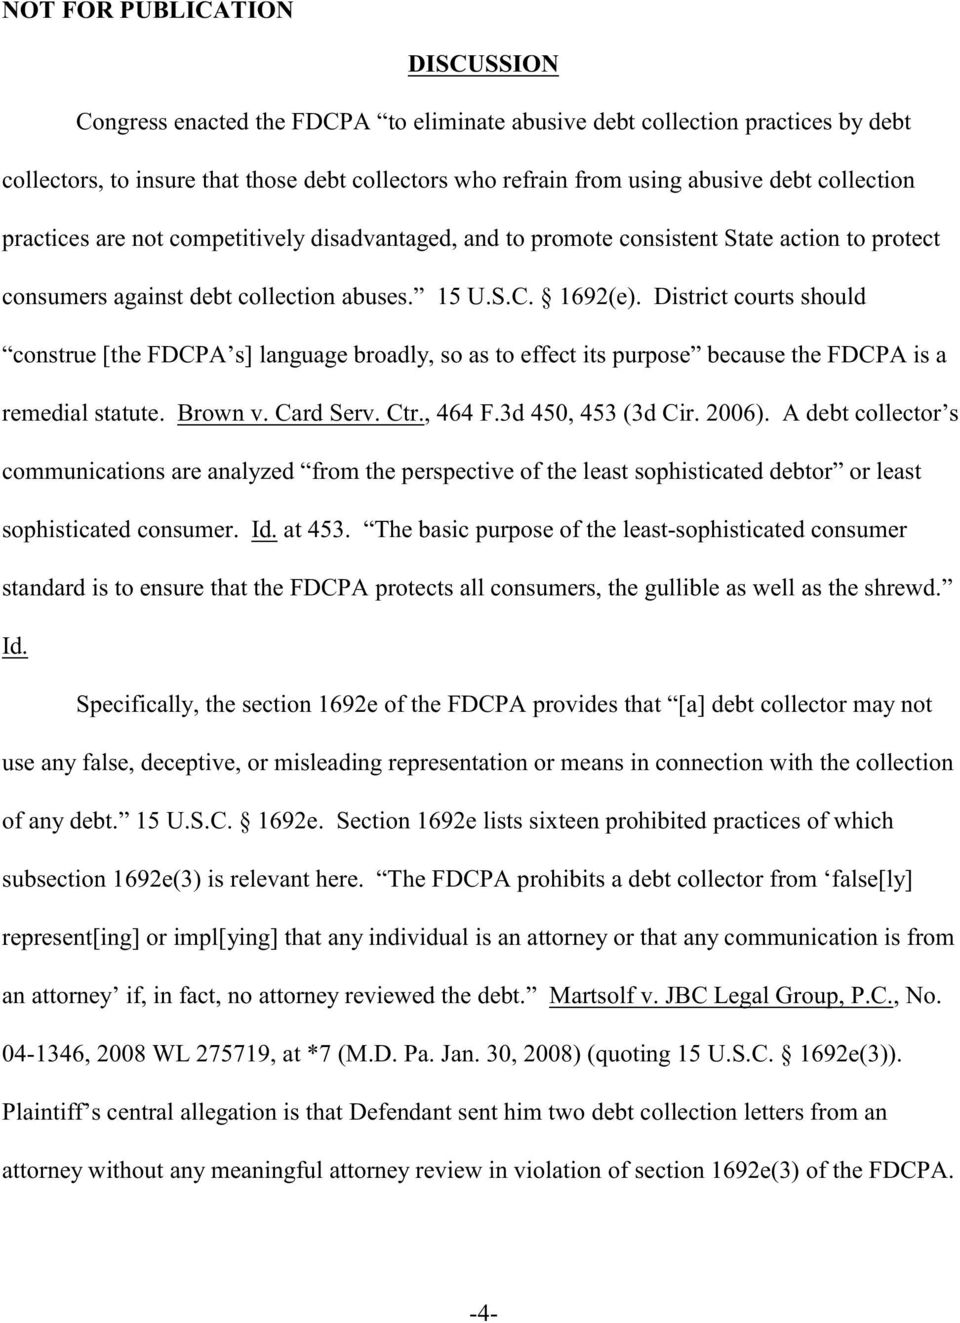 District courts should construe [the FDCPA s] language broadly, so as to effect its purpose because the FDCPA is a remedial statute. Brown v. Card Serv. Ctr., 464 F.3d 450, 453 (3d Cir. 2006).